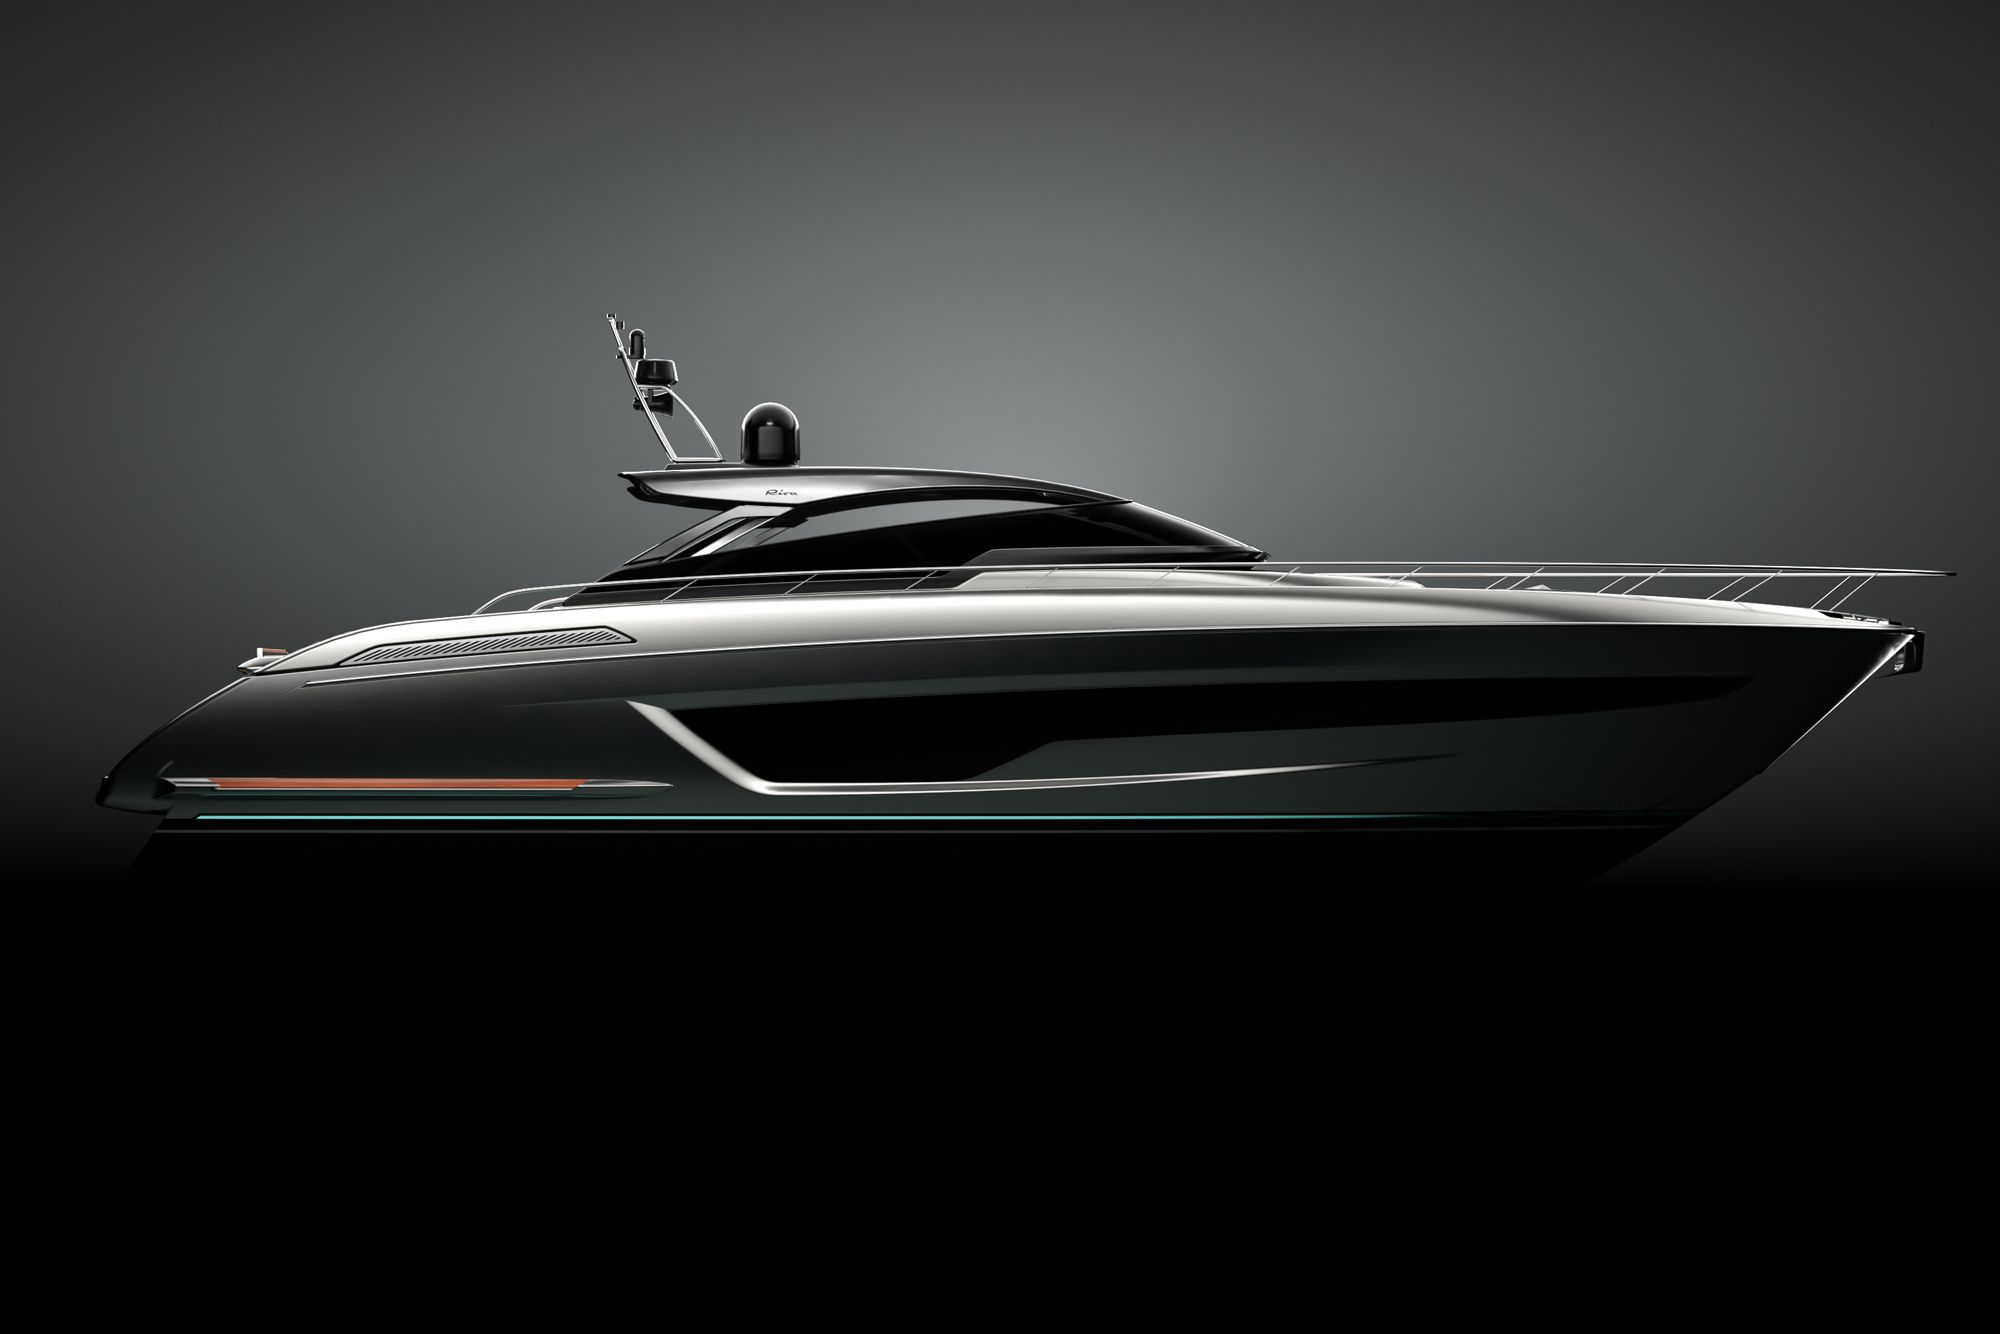 Launching this summer, the Riva 68 Diable is projected to have a 40-knot top-end speed.